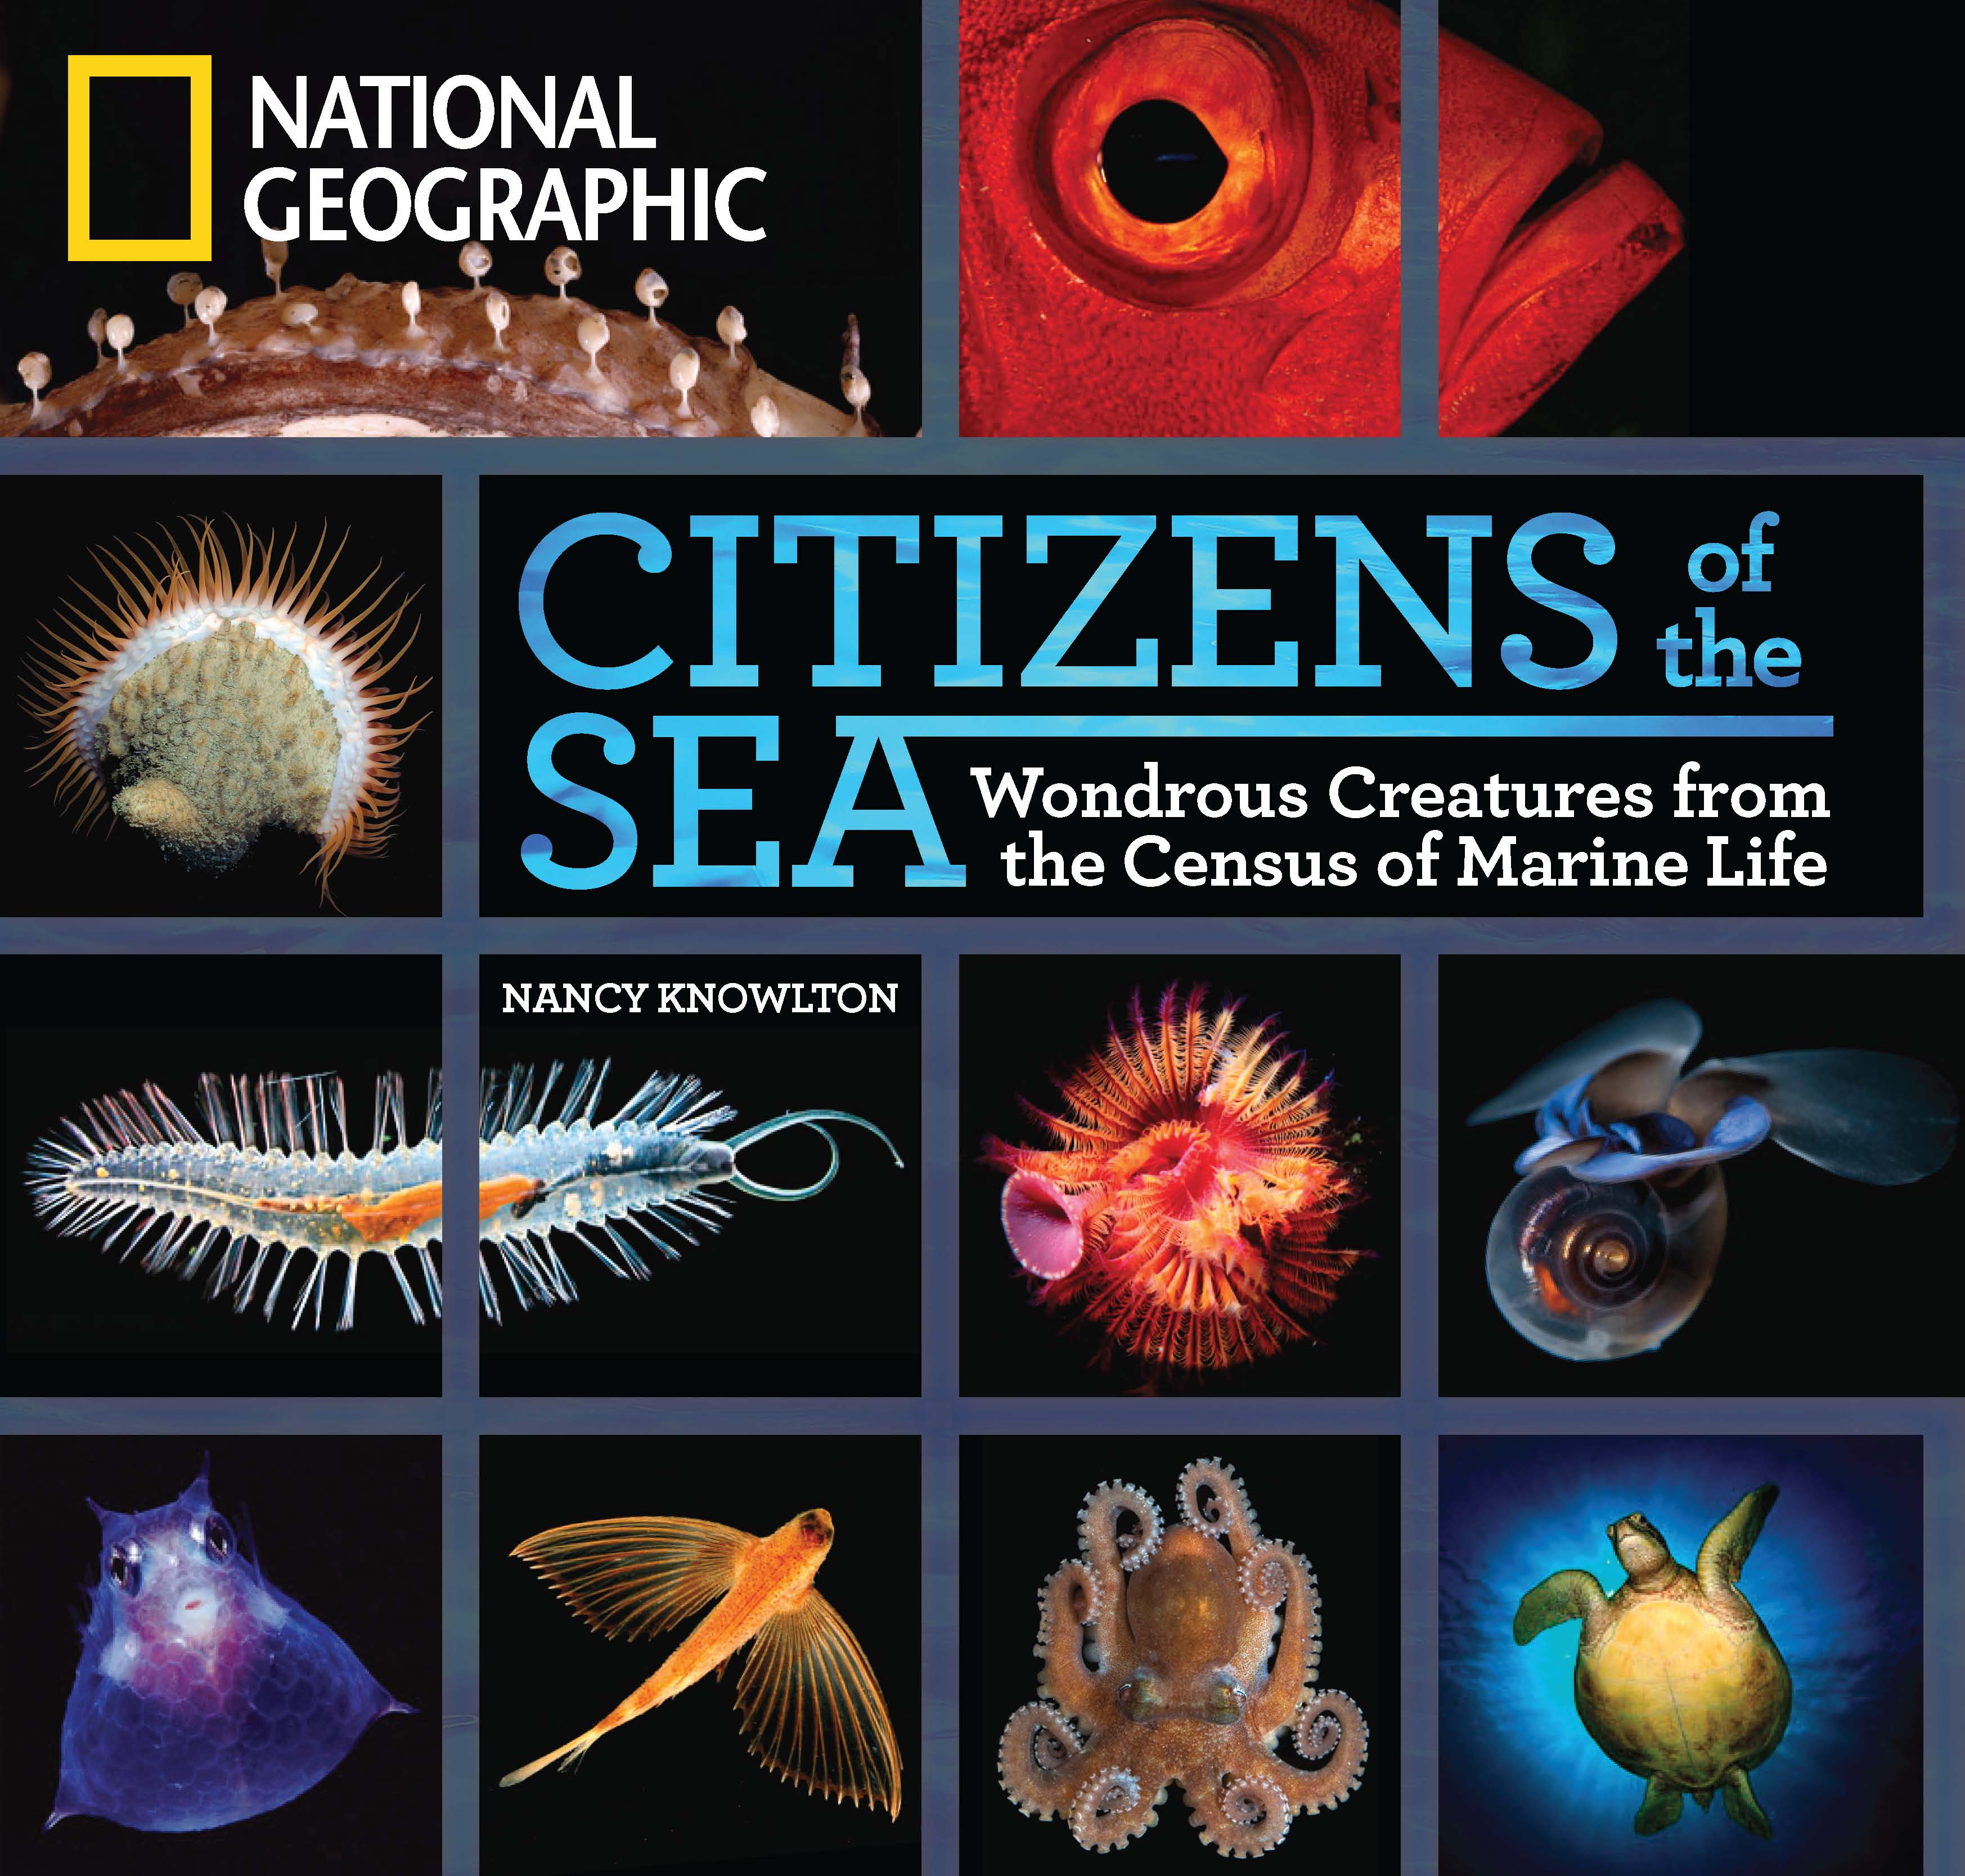 Cover of the Book Citizens of the Sea<div class='credit'><strong>Credit:</strong> Cover of the Book Citizens of the Sea</div>